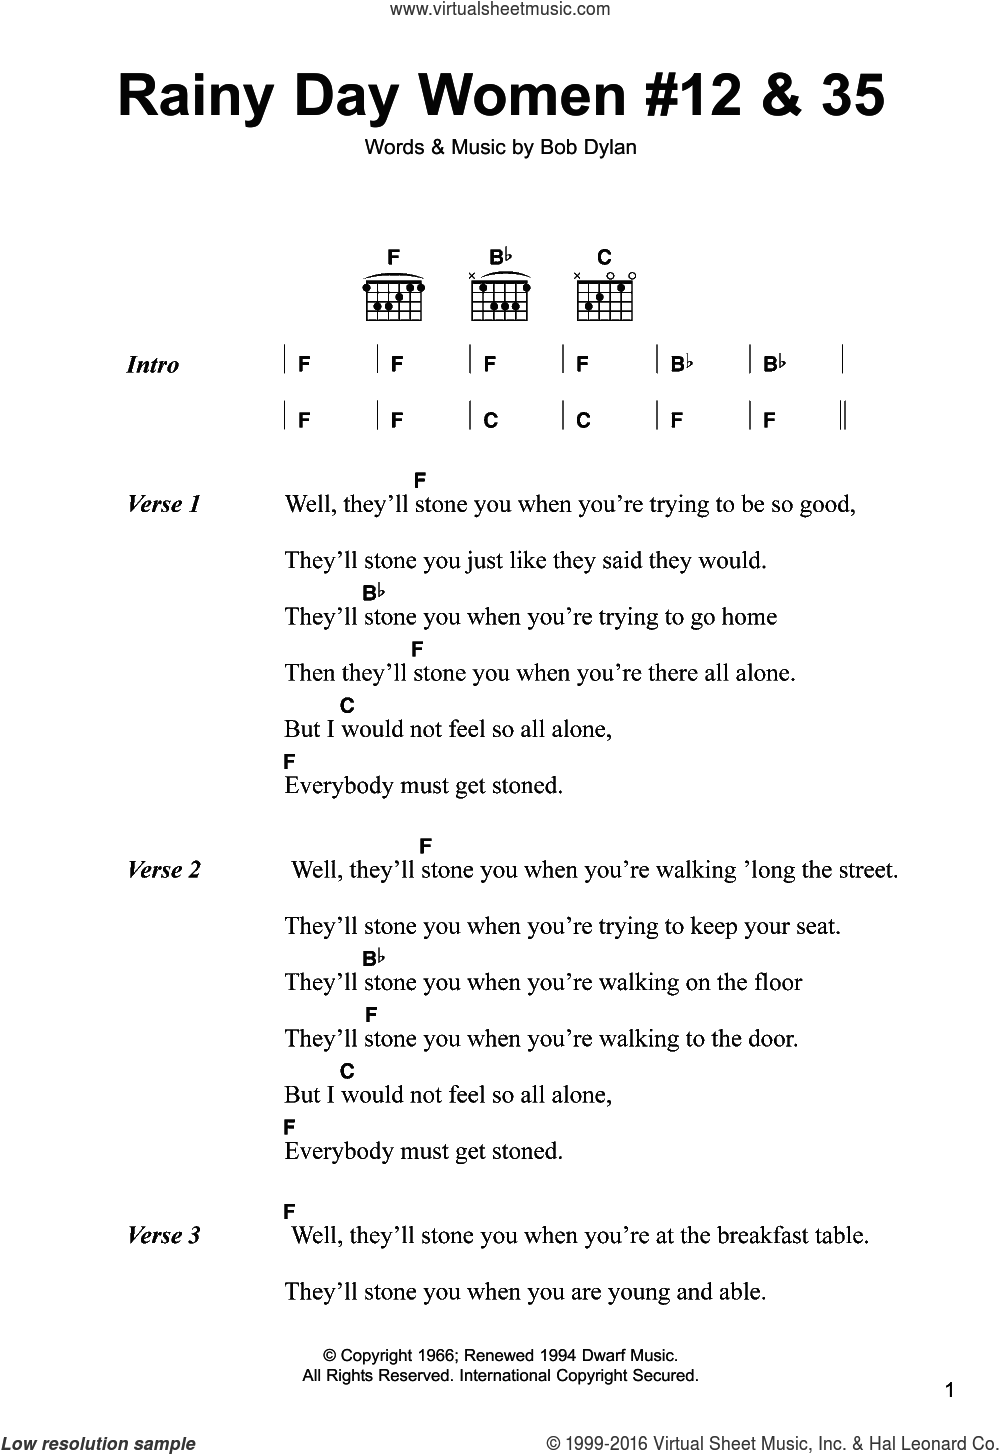 Rainy Day Women #12 and 35 sheet music for guitar (chords) by Bob Dylan. Score Image Preview.